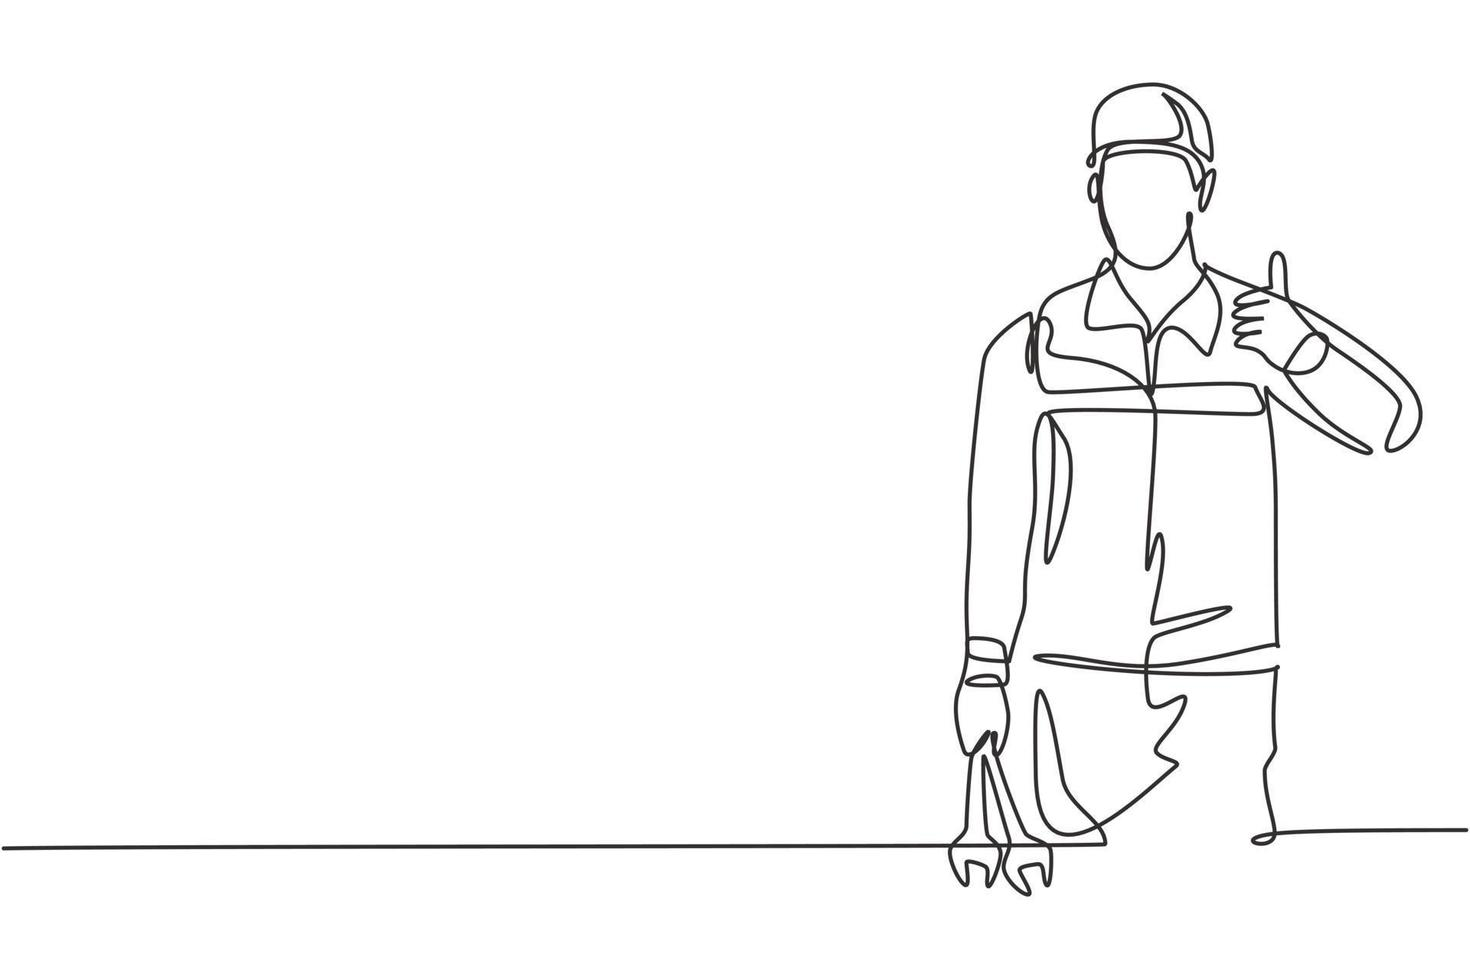 Single continuous line drawing mechanic with the gesture of lifting his thumb and holding the wrench works to fix a broken car engine in the garage. One line draw graphic design vector illustration.